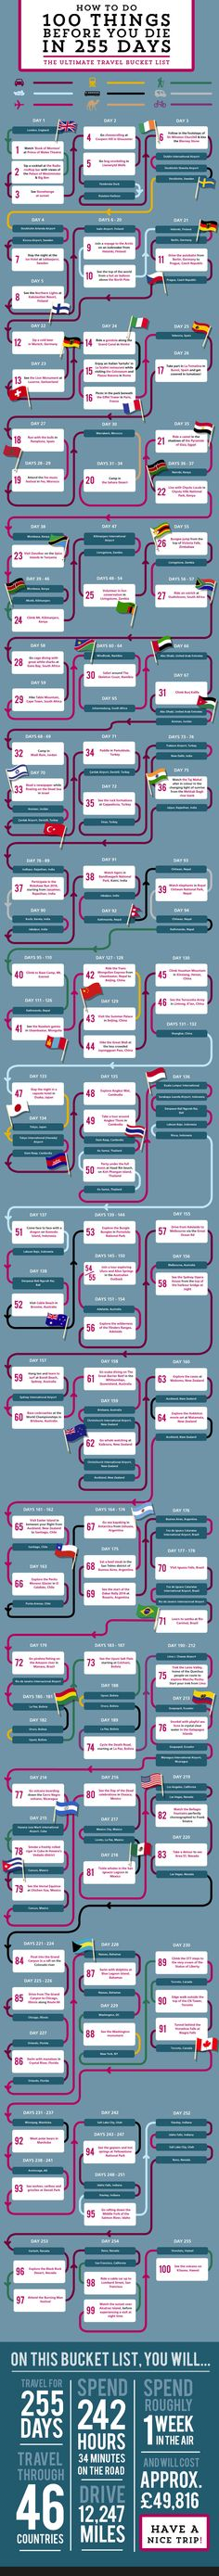 http://www.feeldesain.com/how-to-do-100-things-before-you-die-in-255-days.html